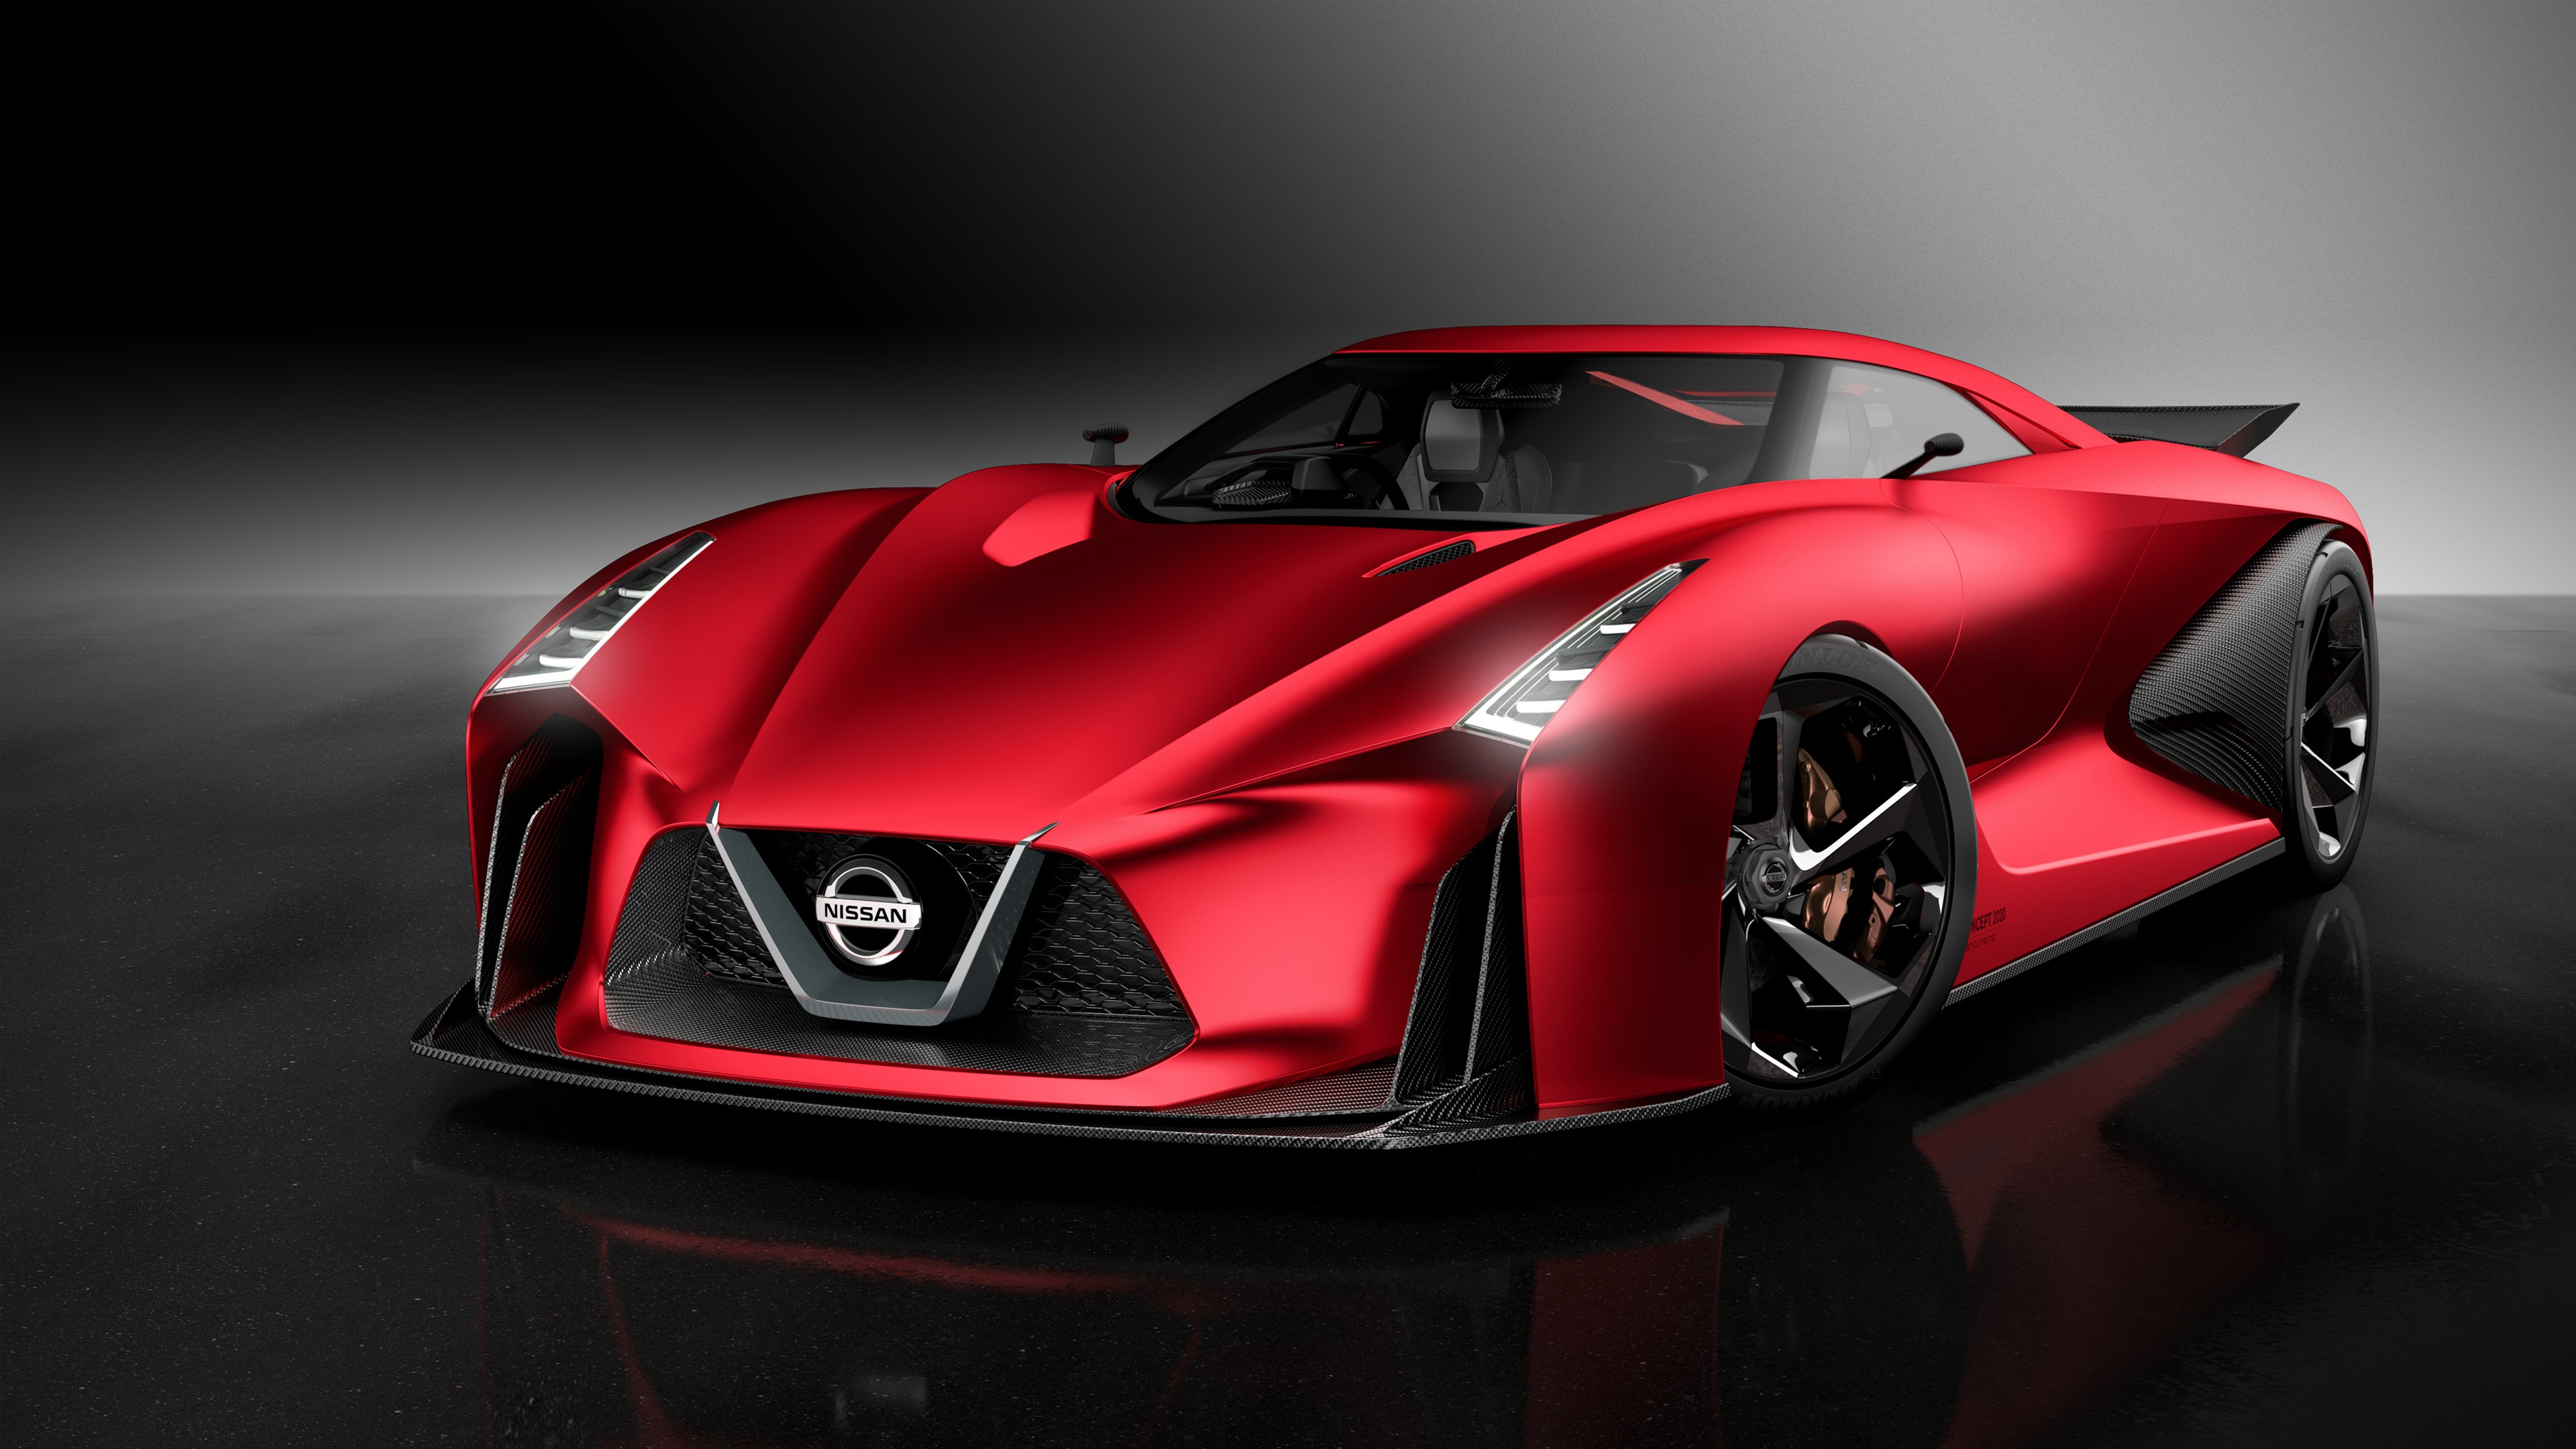 3840x2160 - Nissan Concept Wallpapers 31